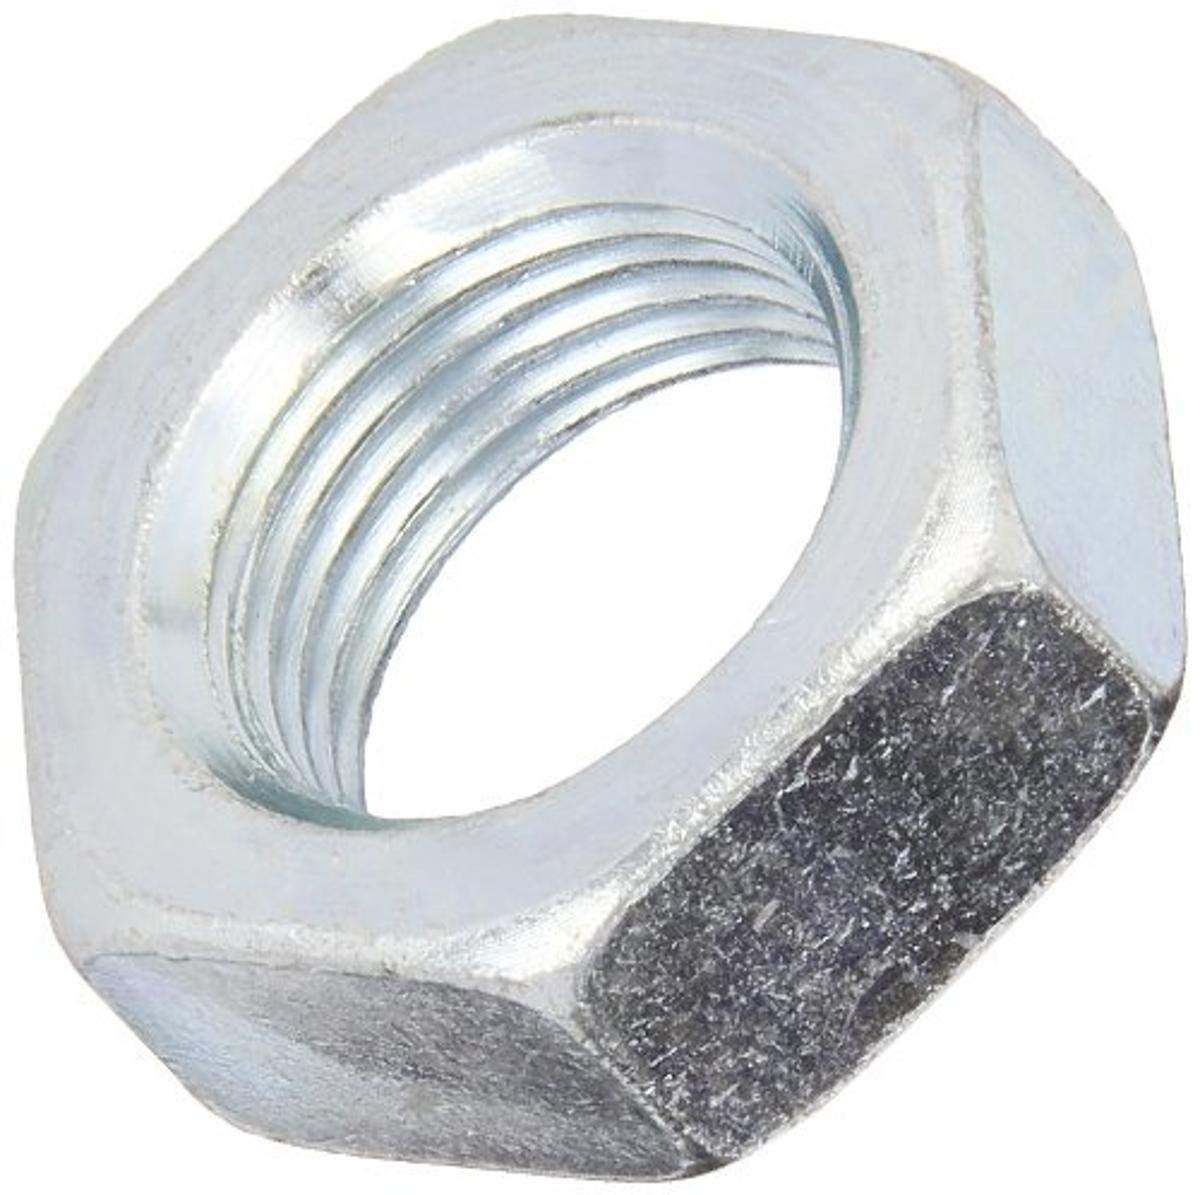 Grade 5 Zinc Plated Steel Finished Hex Nuts 5//16-18 24 3//8-16 1//4-20 1//4-28